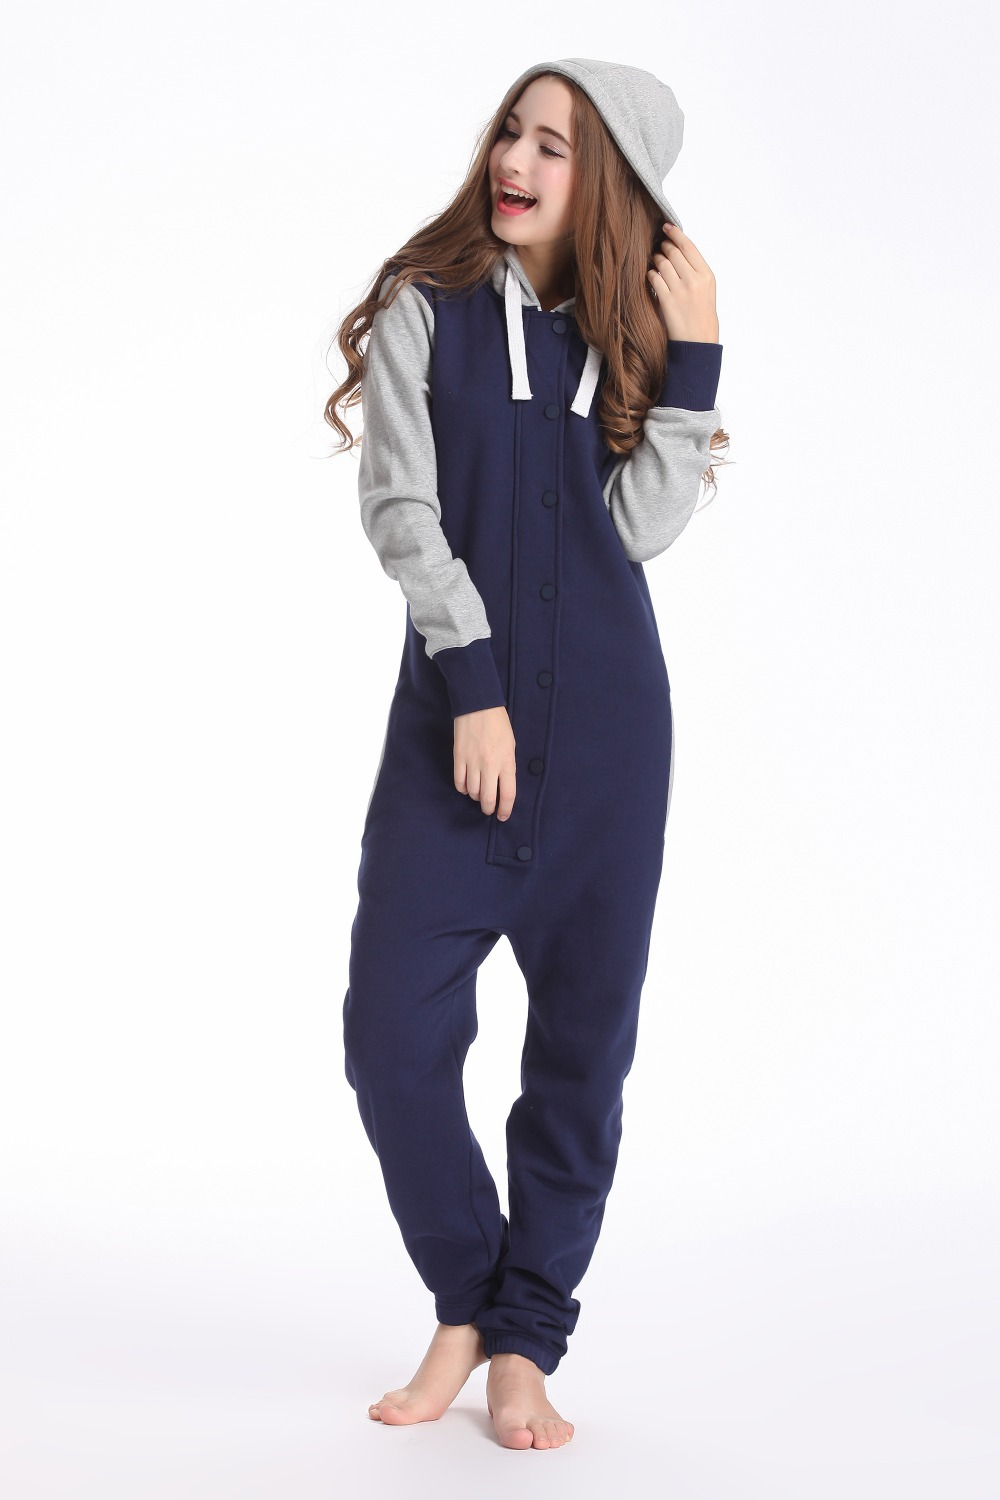 Adult American Dream One Piece Pajamas - Party City Find this Pin and more on clothes by jessi person. Suit up for bedtime in our American Dream Costume! This soft fleece one-piece American Dream Costume is the perfect loungewear for superheroes.